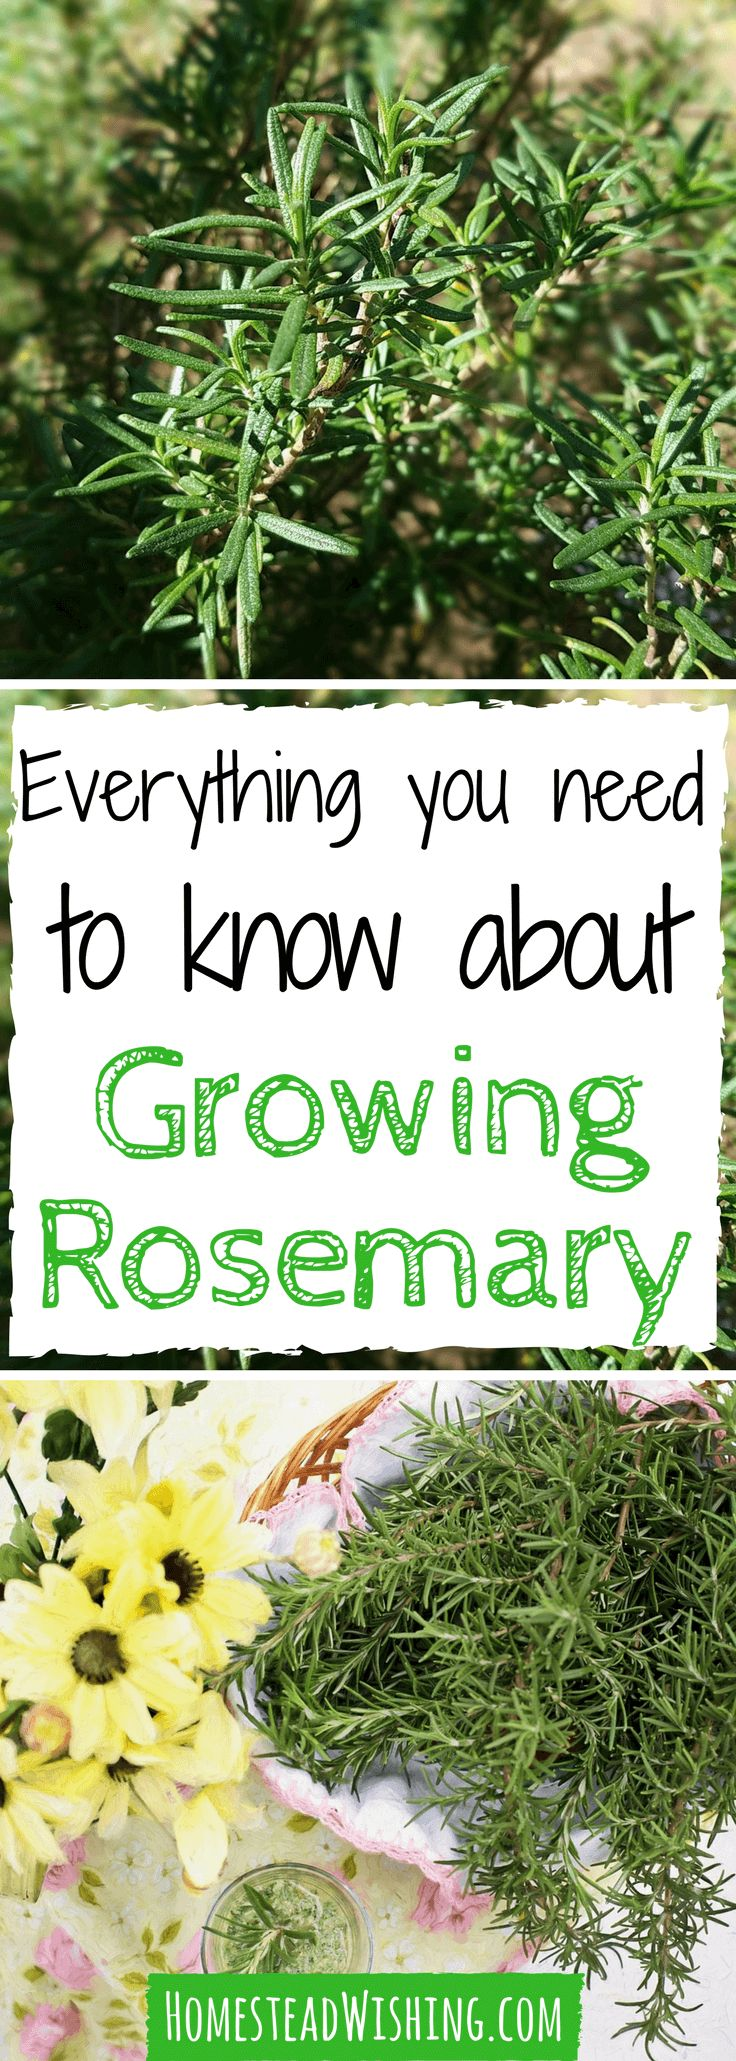 When I first started growing rosemary, I had a hard time. In fact, I killed a few plants at first. Trial and error showed me the way, now I'll show you!   Homestead Wishing, Author Kristi Wheeler   http://homesteadwishing.com/growing-rosemary/   growing-rosemary, herb-gardening  